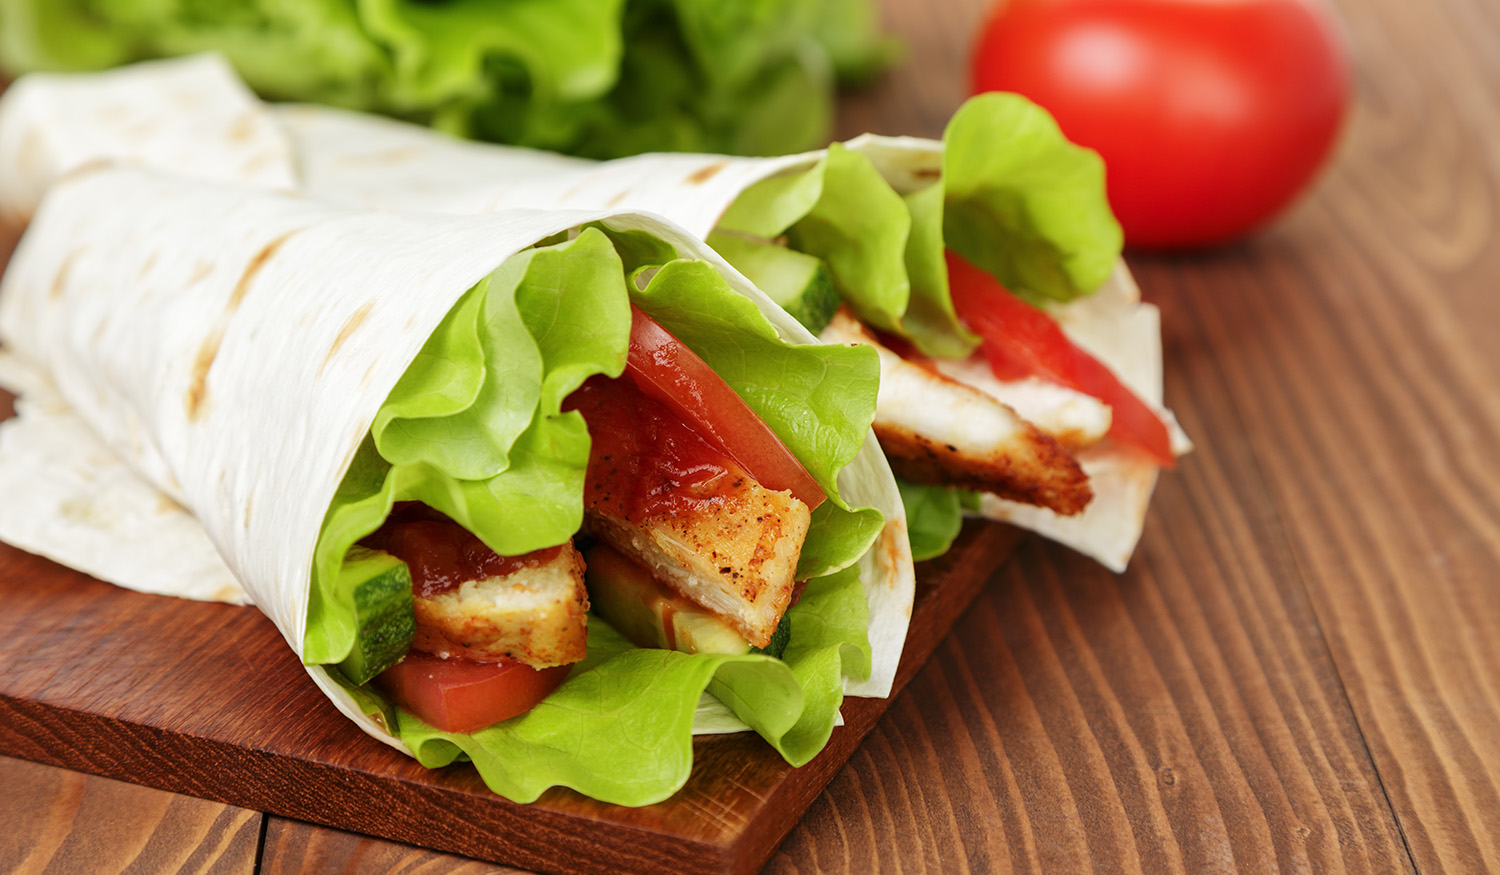 Santa Fe Chicken Wrap